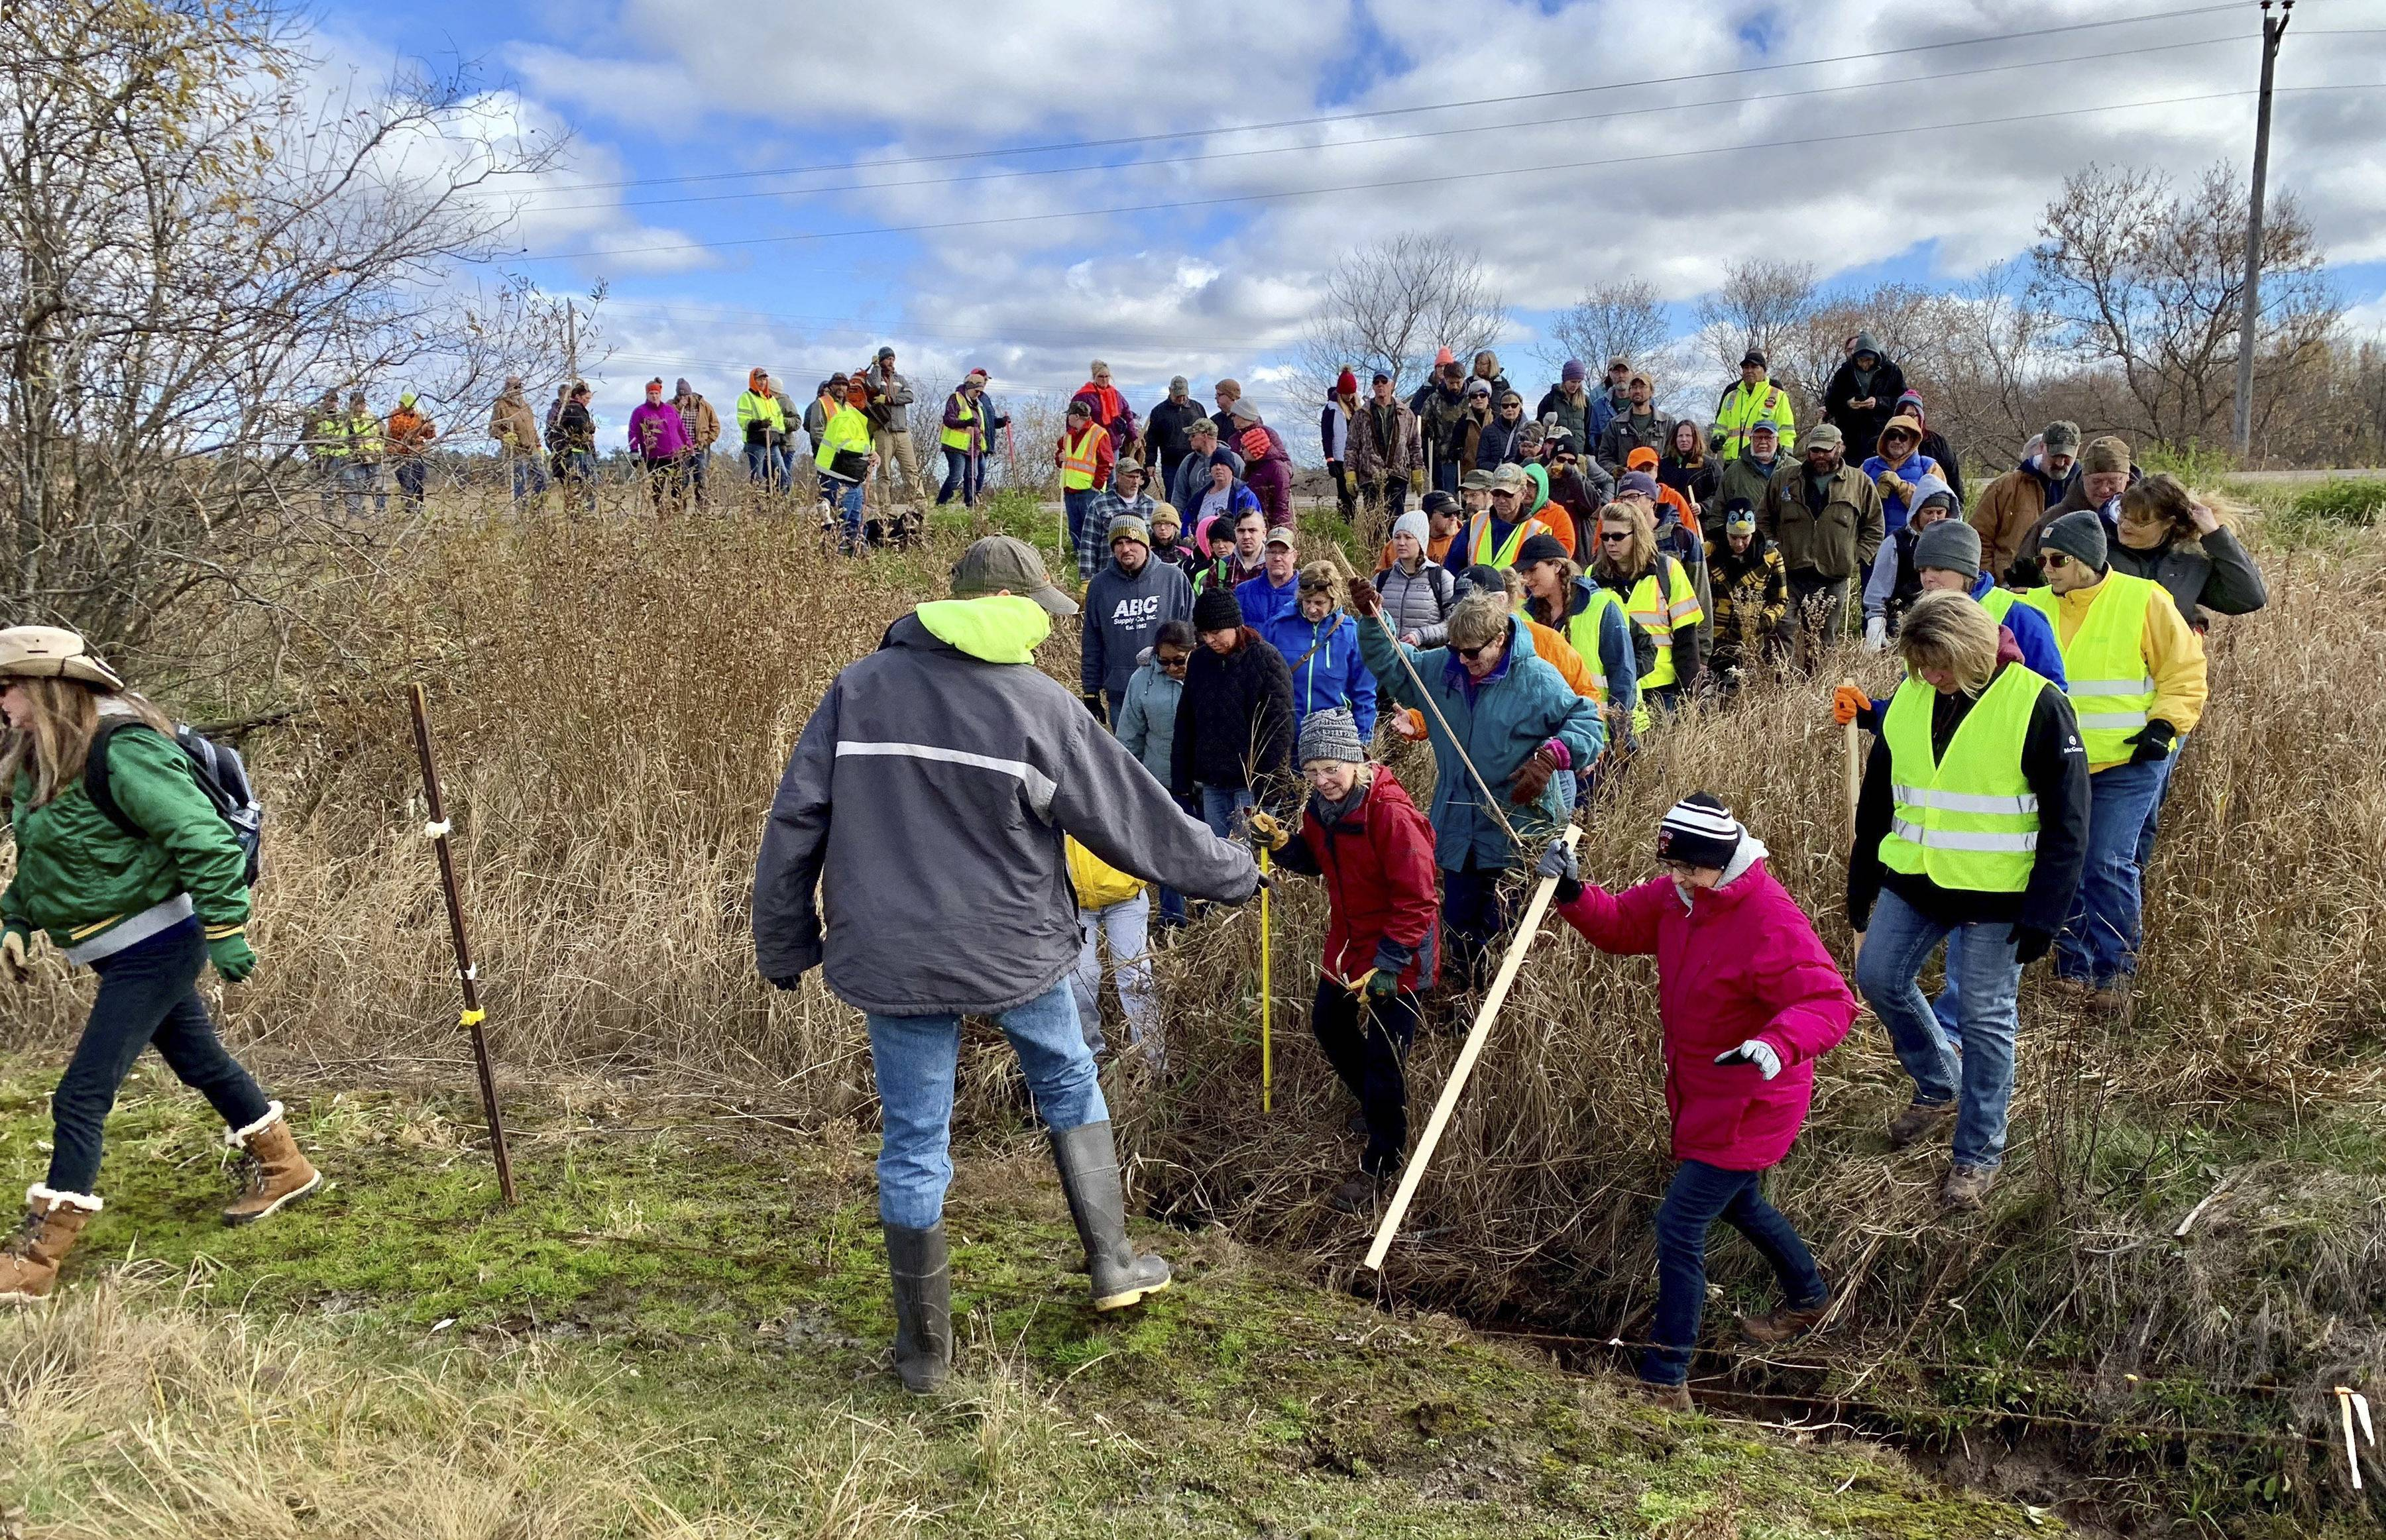 In this Oct. 23, 2018, file photo, volunteers cross a creek and barbed wire near Barron, Wis., on their way to a ground search for 13-year-old Jayme Closs who was discovered missing Oct. 15 after her parents were found fatally shot at their home. The Barron County Sheriff's Department said on its Facebook page that that the teenager Closs has been located Thursday, Jan. 10, 2019, and that a suspect was taken into custody.